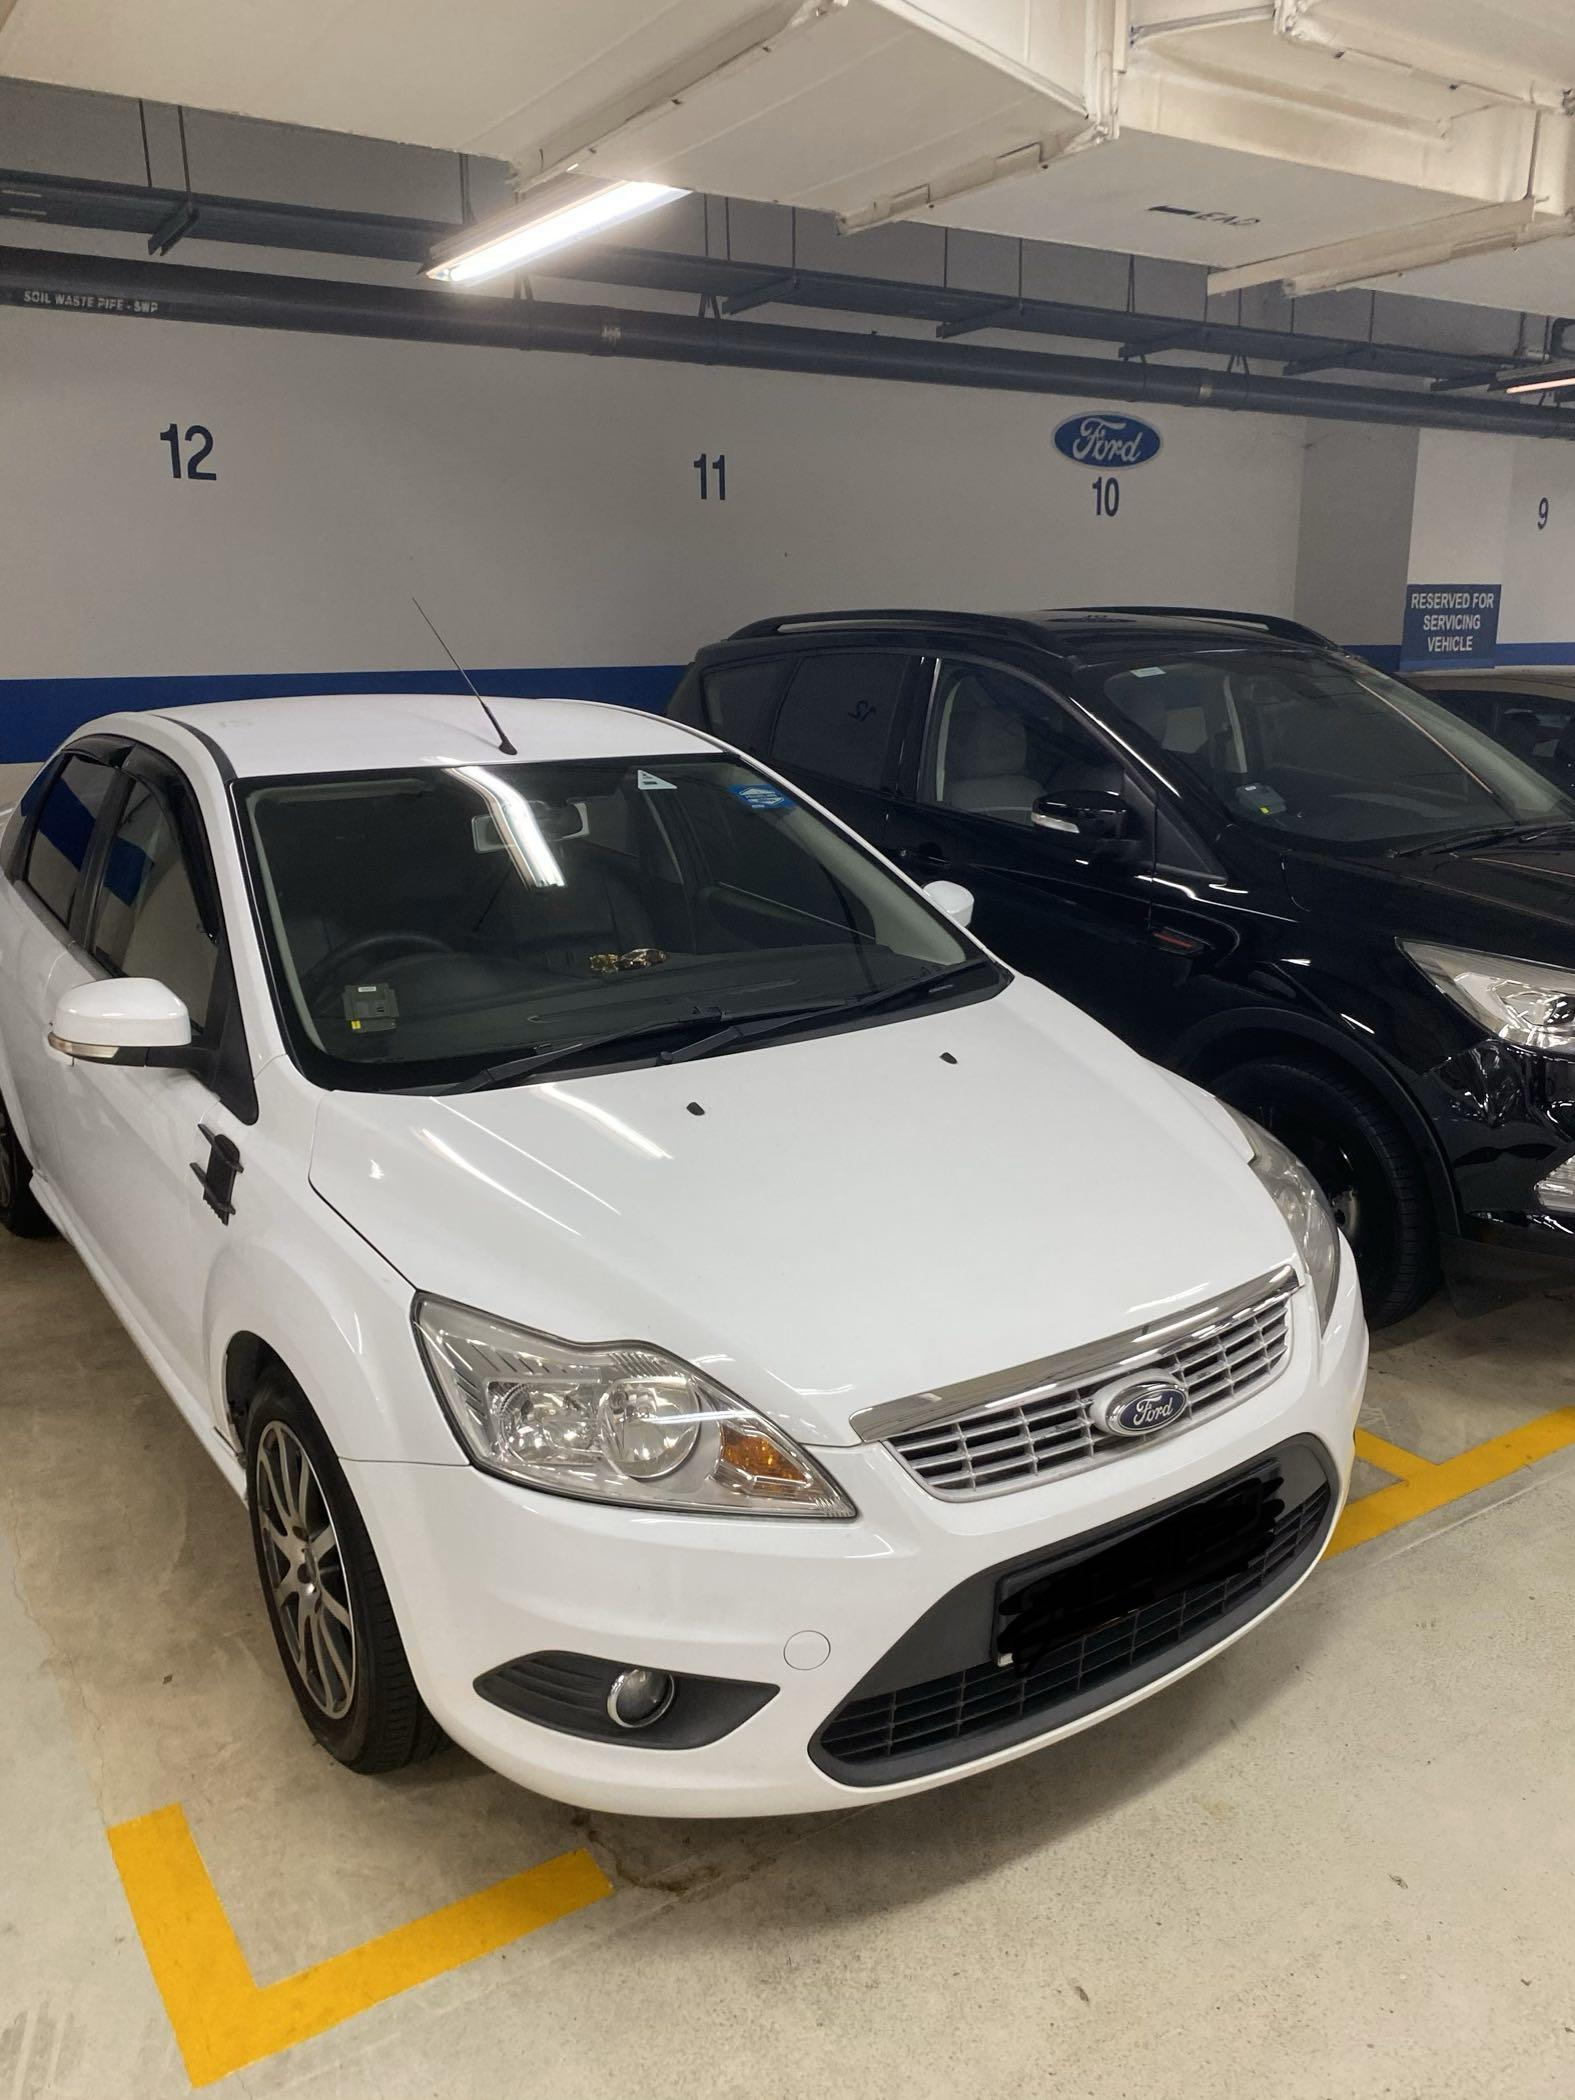 Ford Focus 1.6 4-Dr (A)